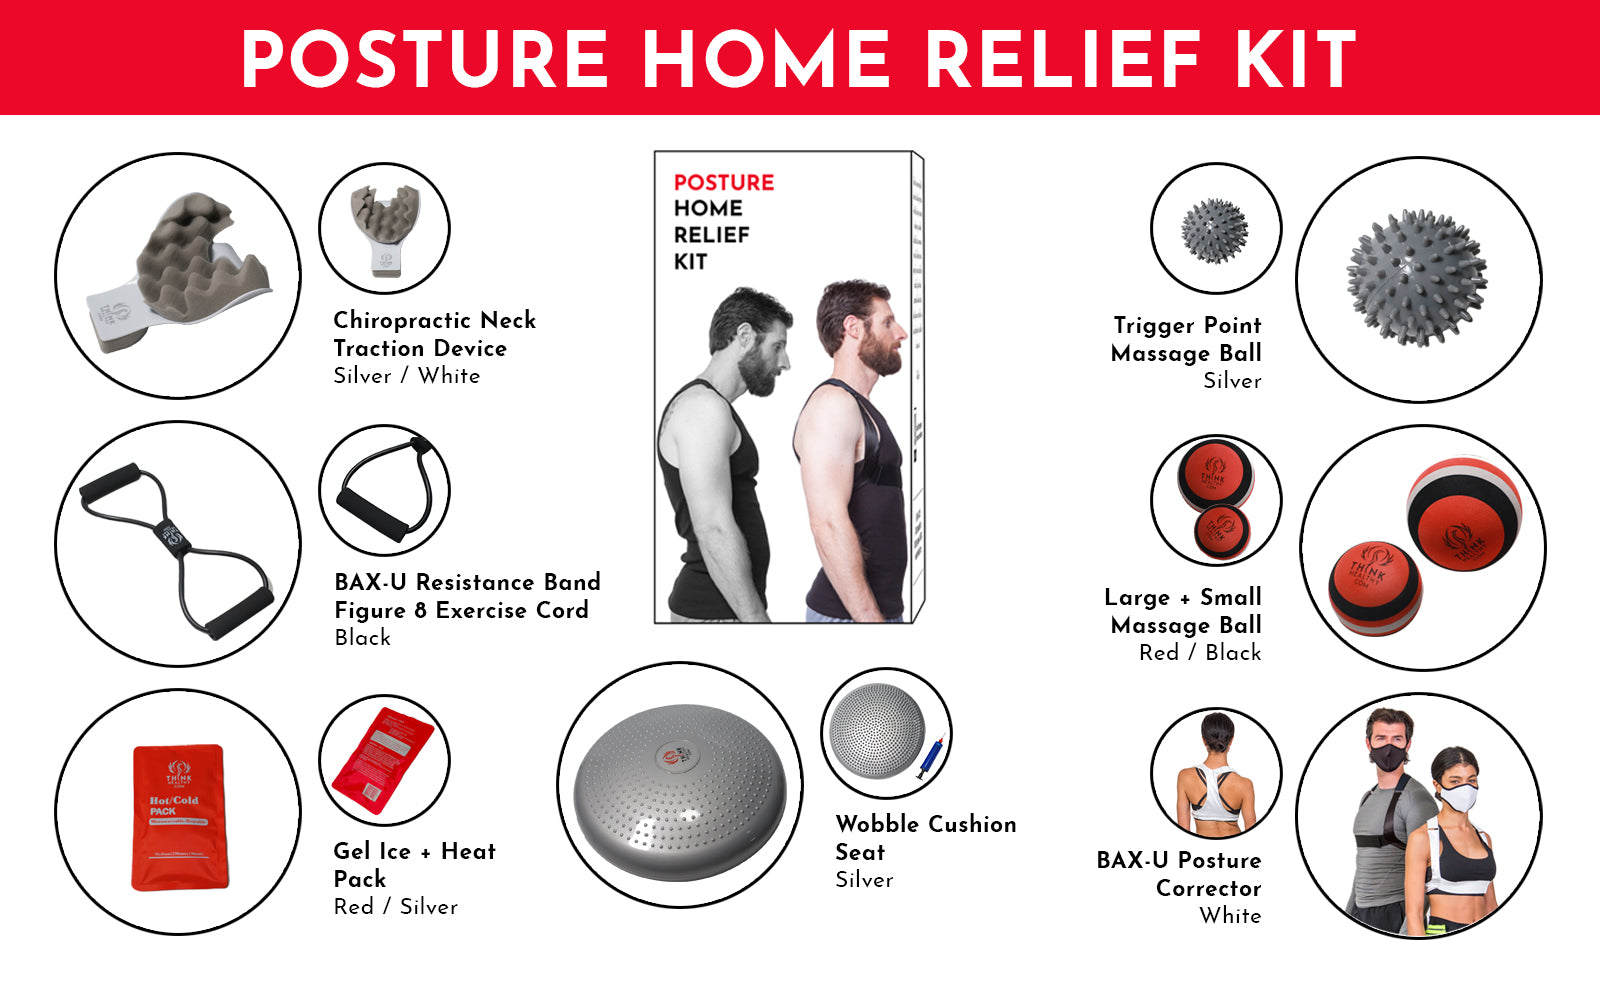 Posture Home Relief Kit